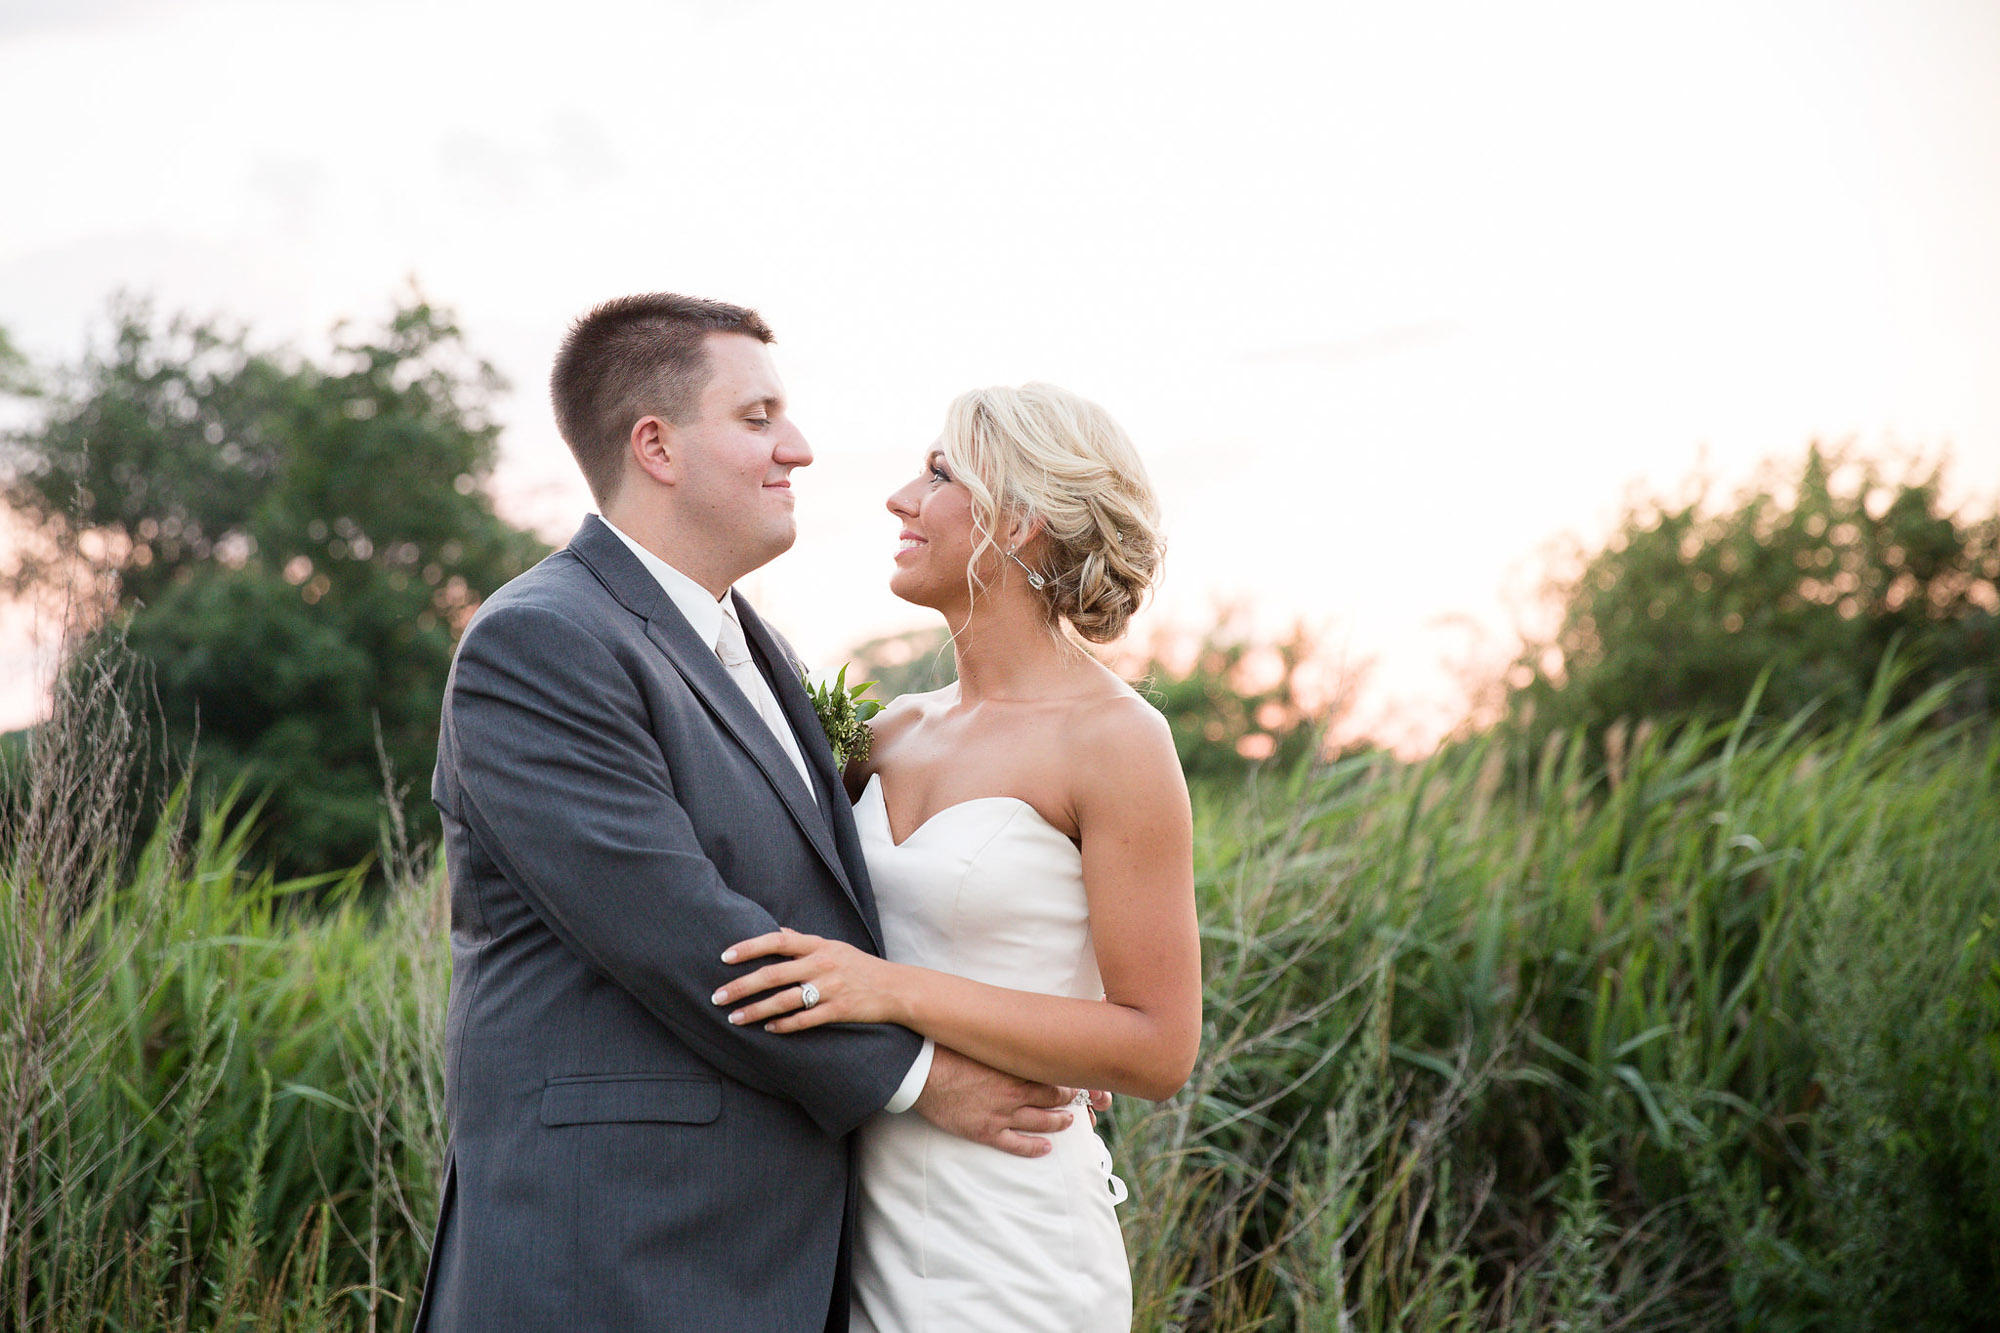 boston-wedding-photographer-26-north-studios-tall-grass.jpg